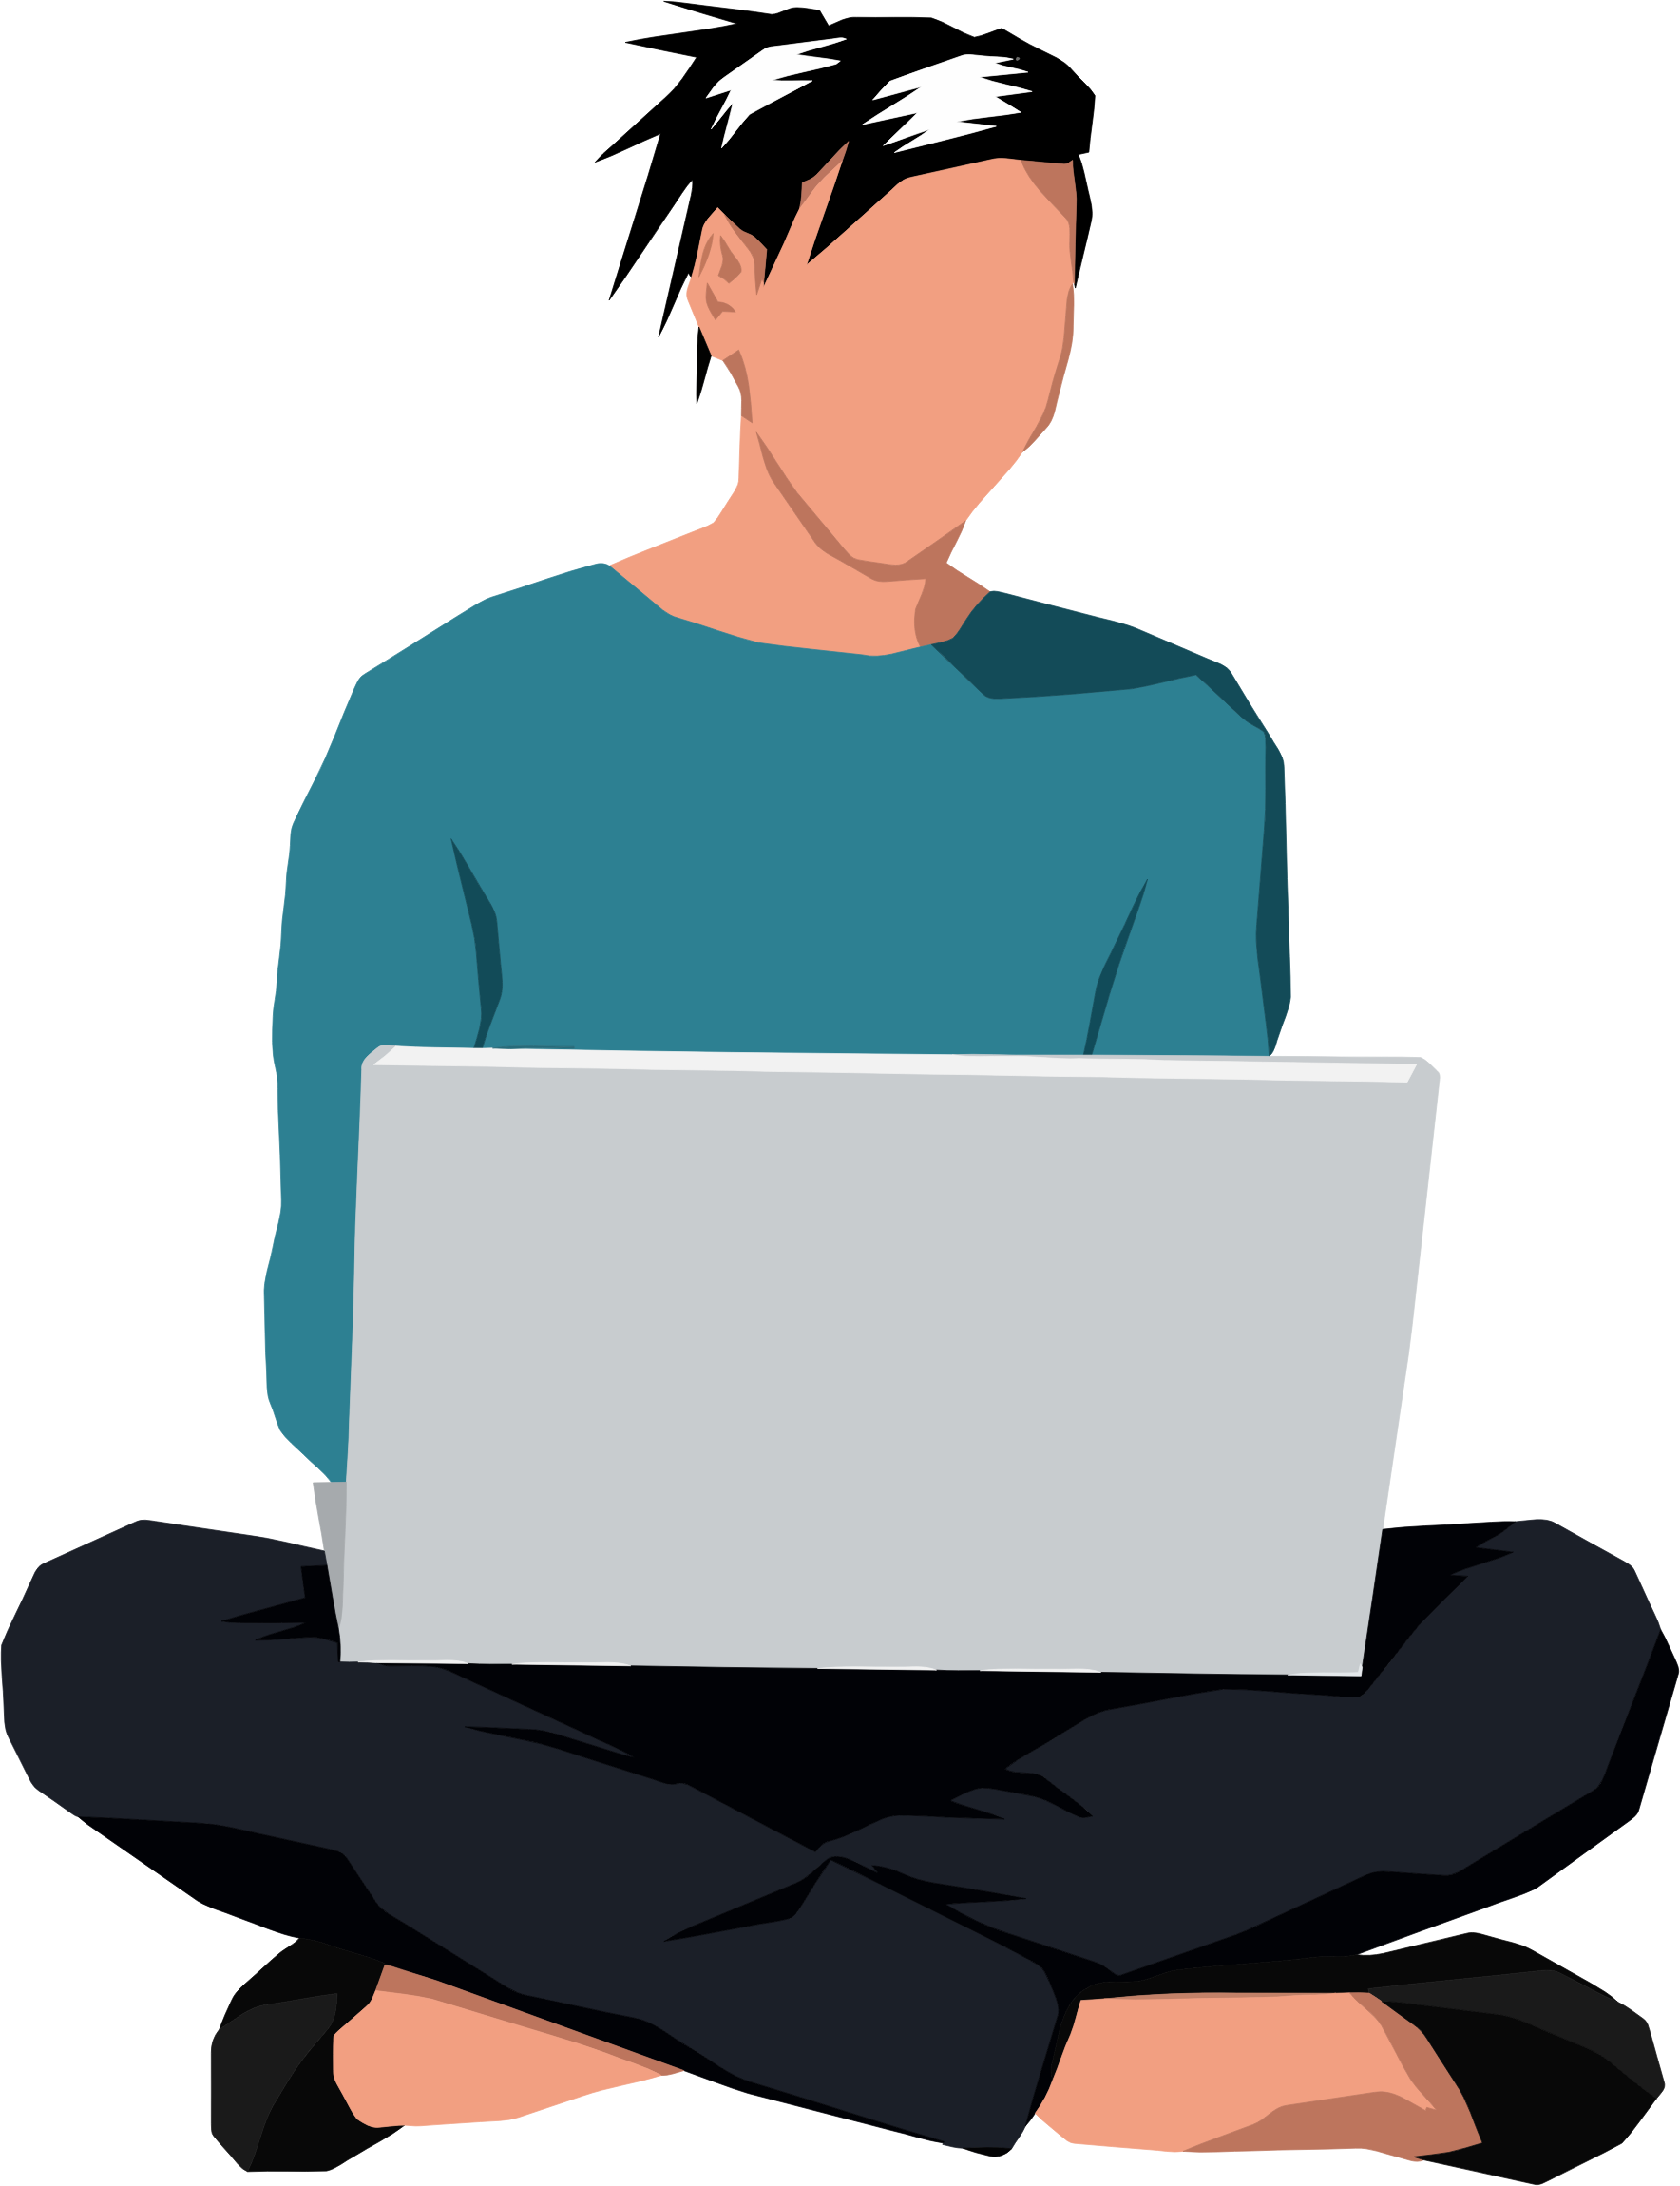 Woman clipart laptop. Sitting down with big